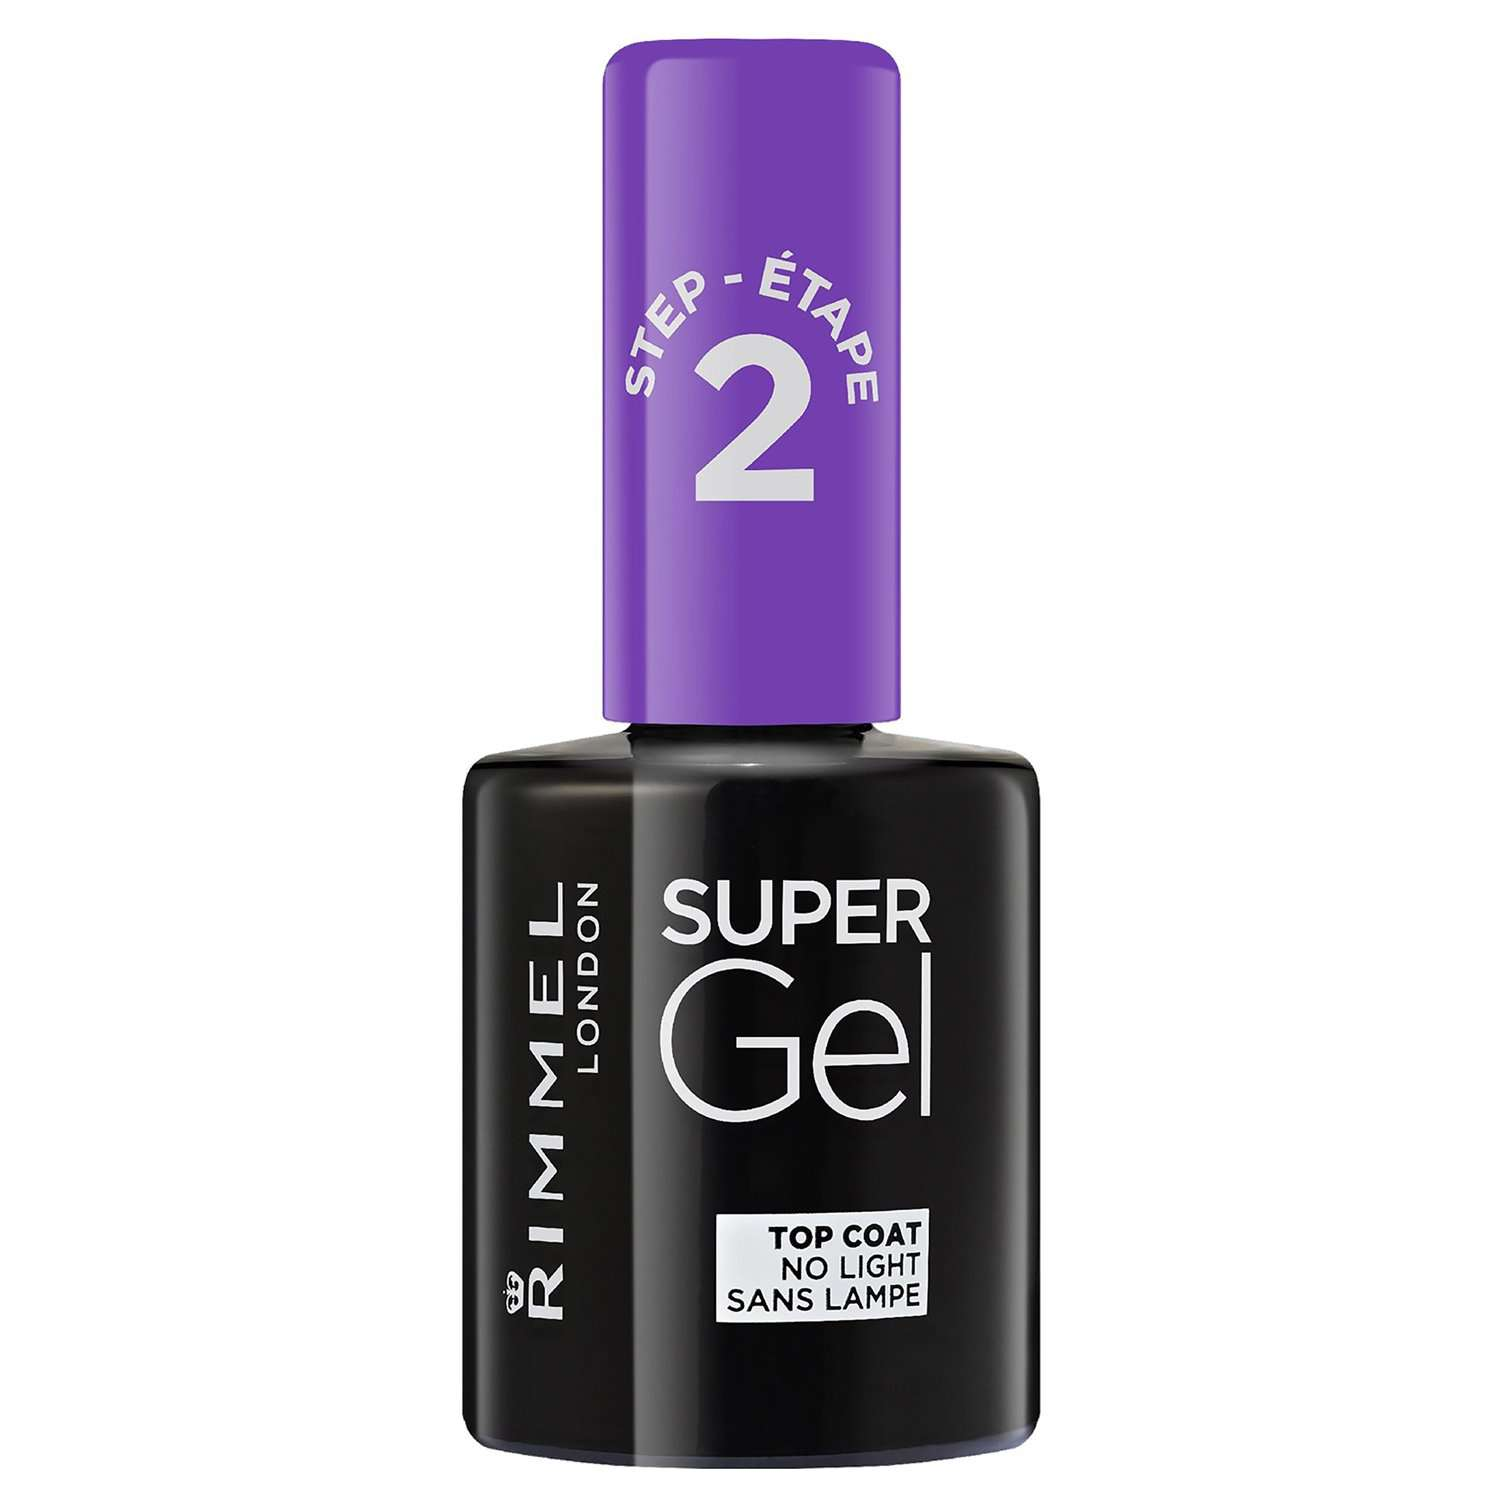 Rimmel - Super Gel Nail Color - Top Coat